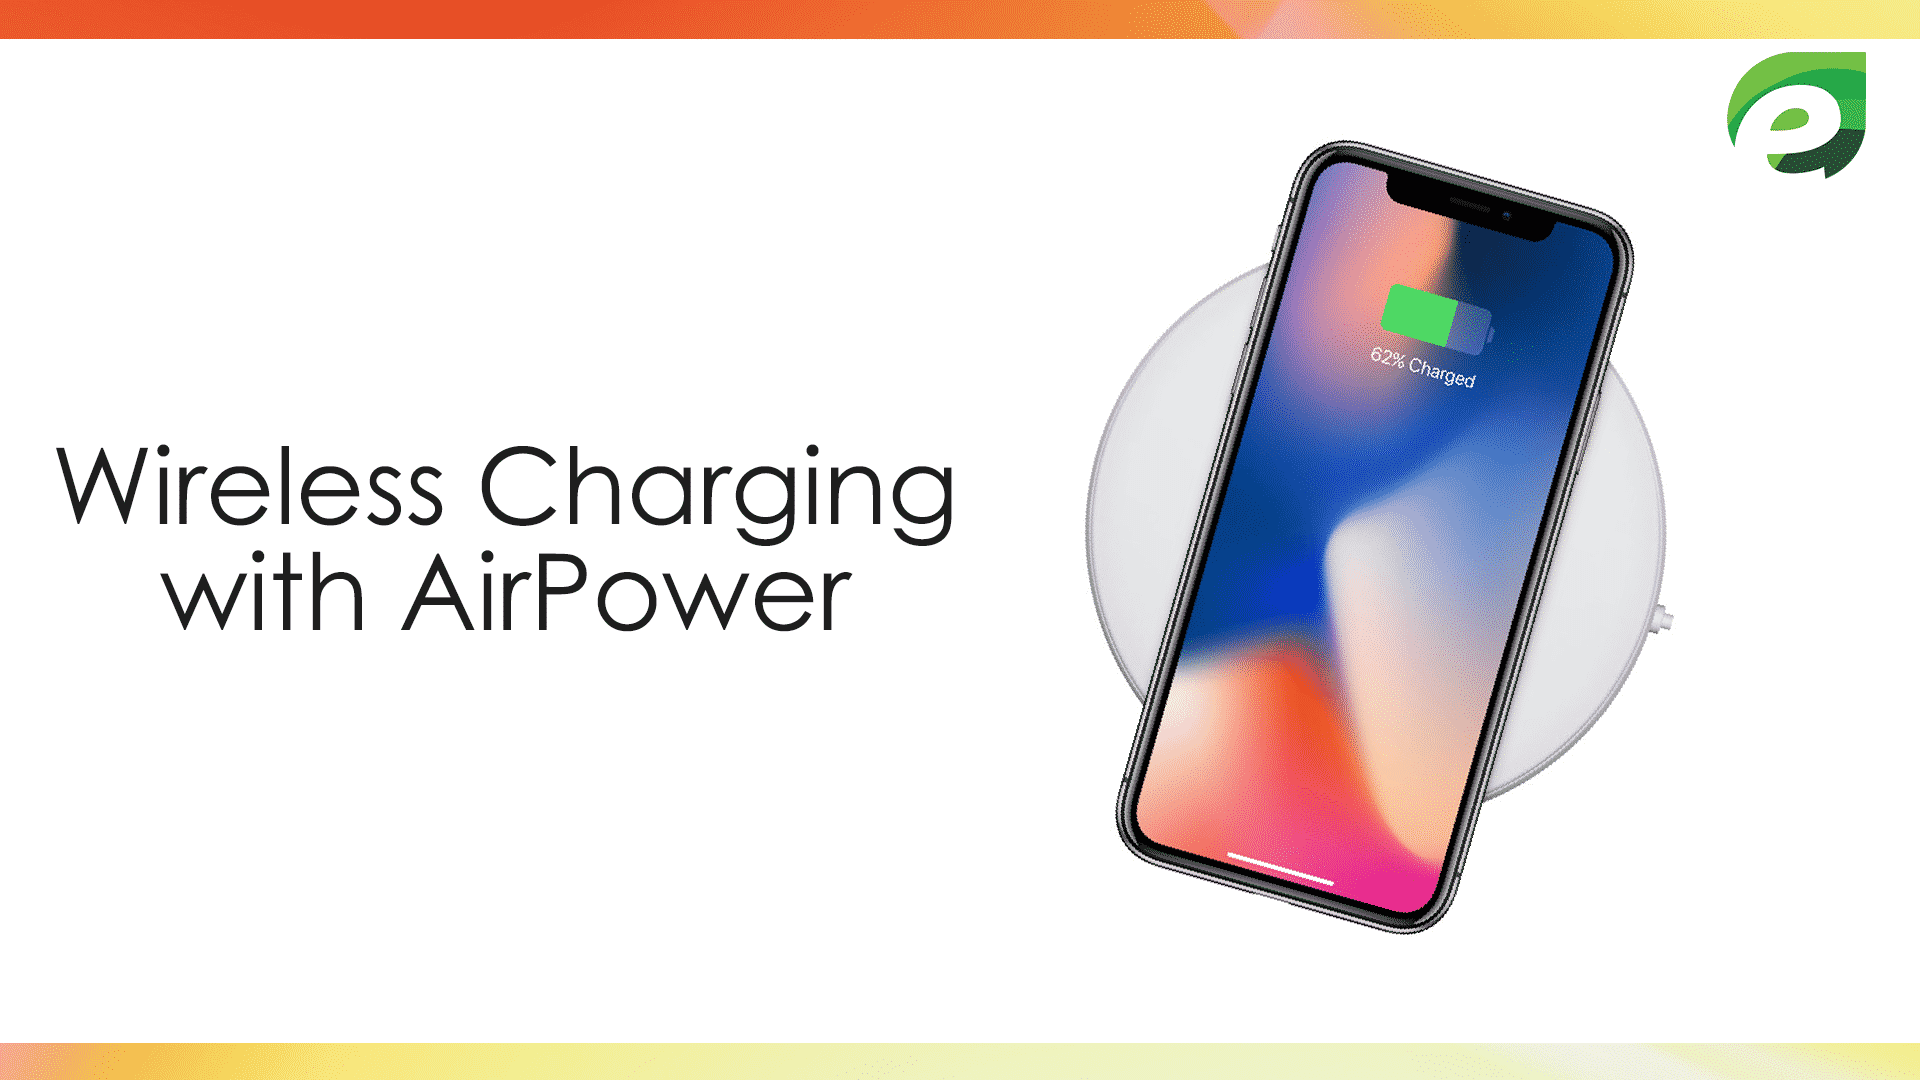 iphone x- wireless charging